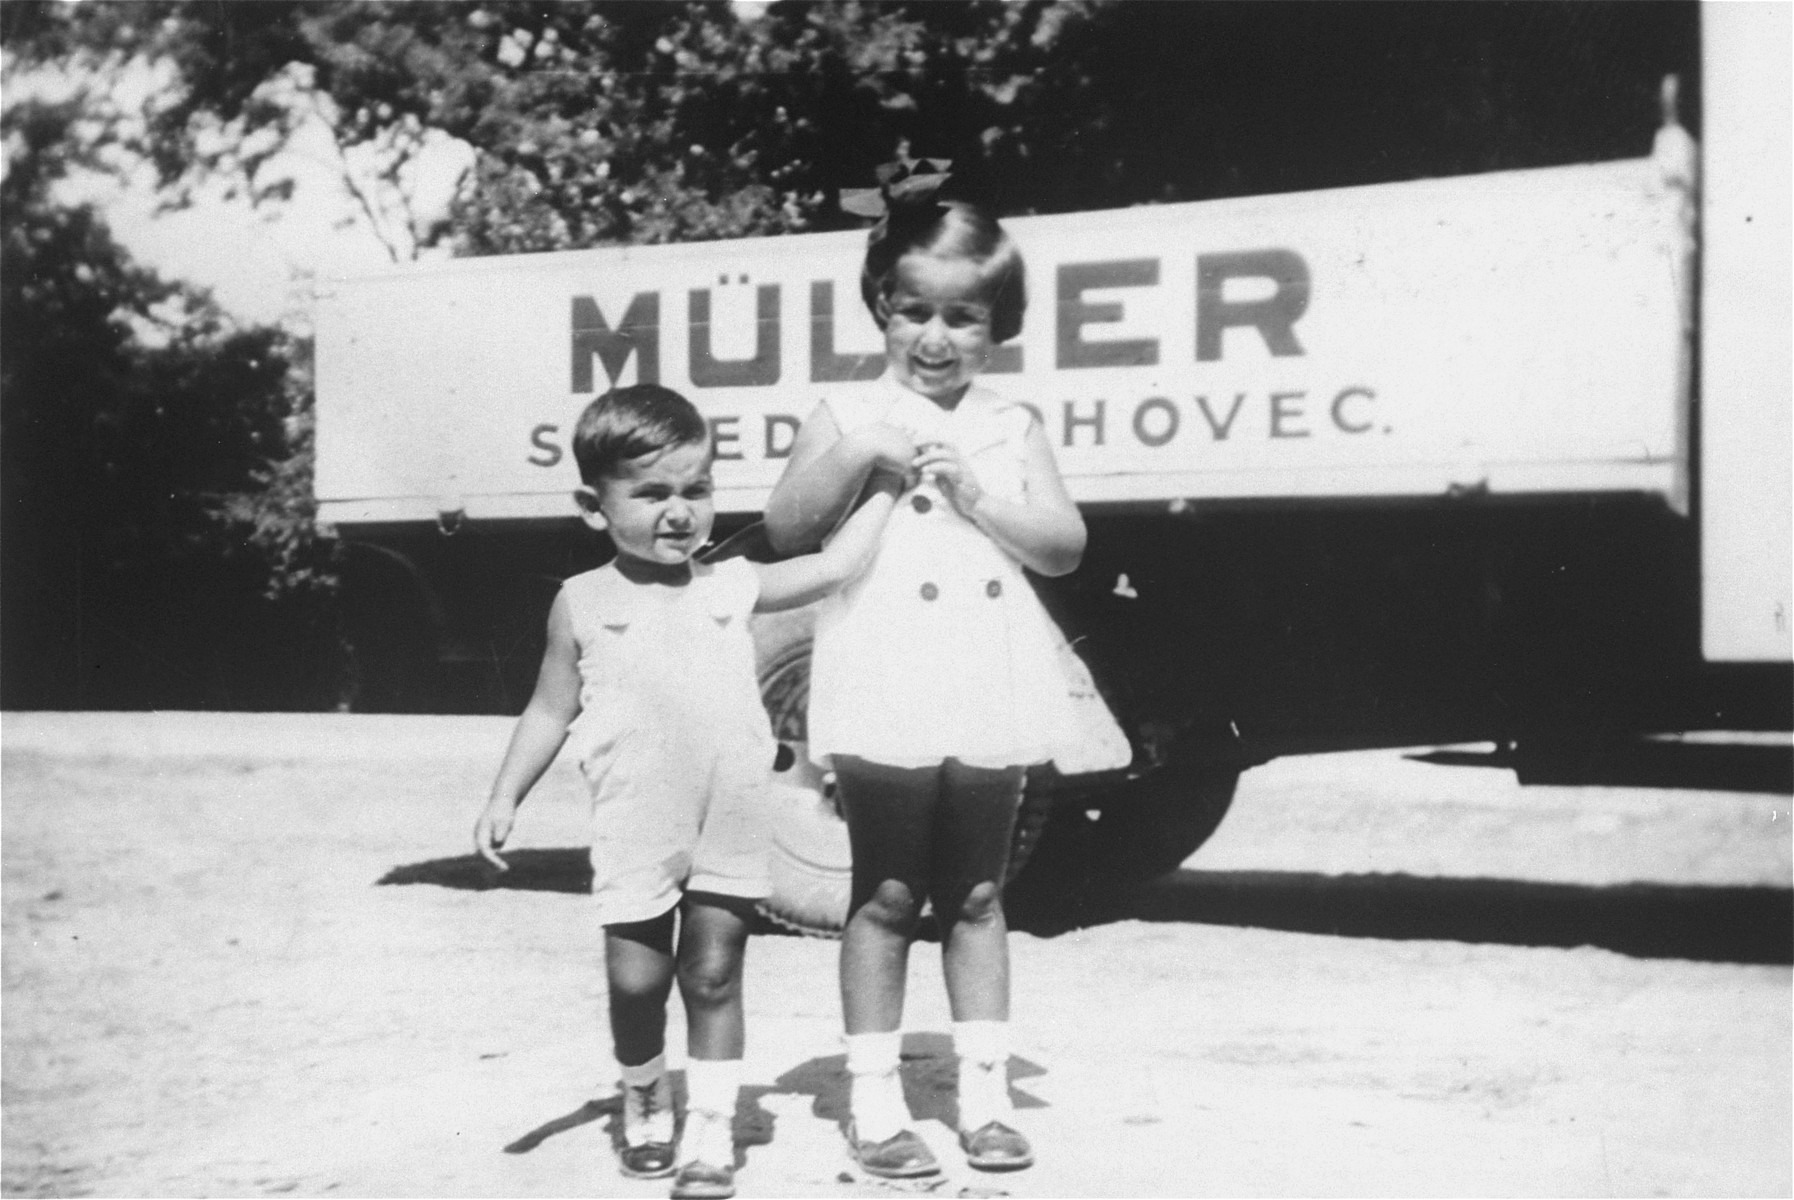 Portrait of the donor's niece and nephew, Agnes and George Muller in front of a truck bearing the name of their family's firm in Sered, Czechoslovakia.